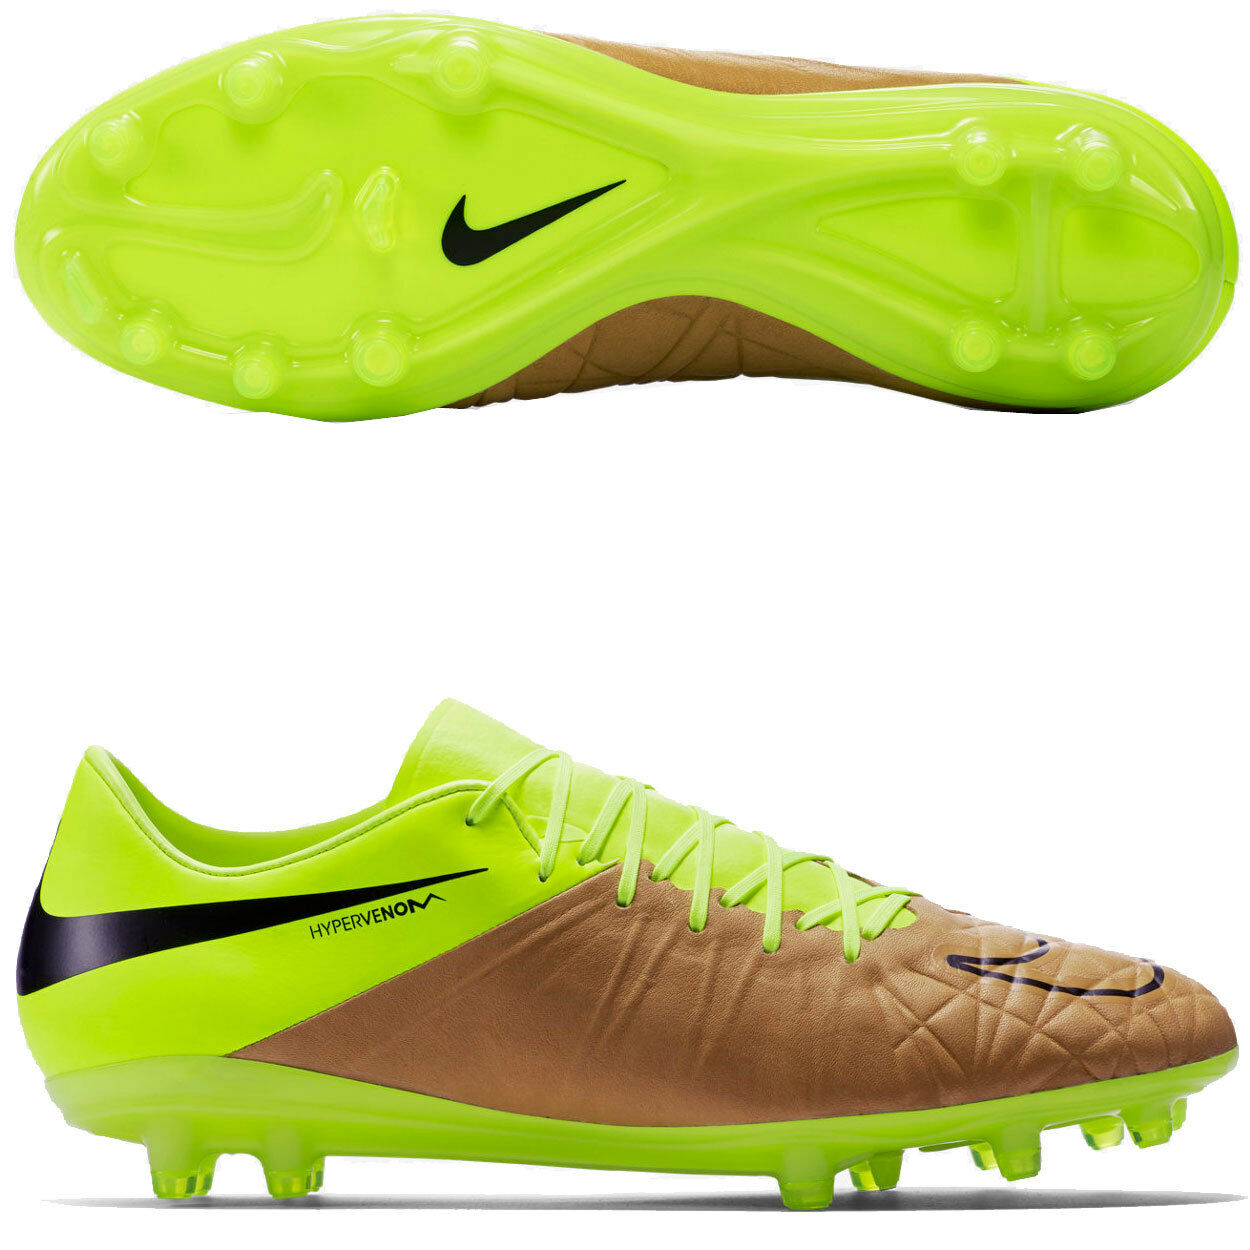 a5a0765f1c4 NIKE HYPERVENOM PHINISH FG SOCCER CLEATS TECH CRAFT SIZE 7 NEW (759980-707)